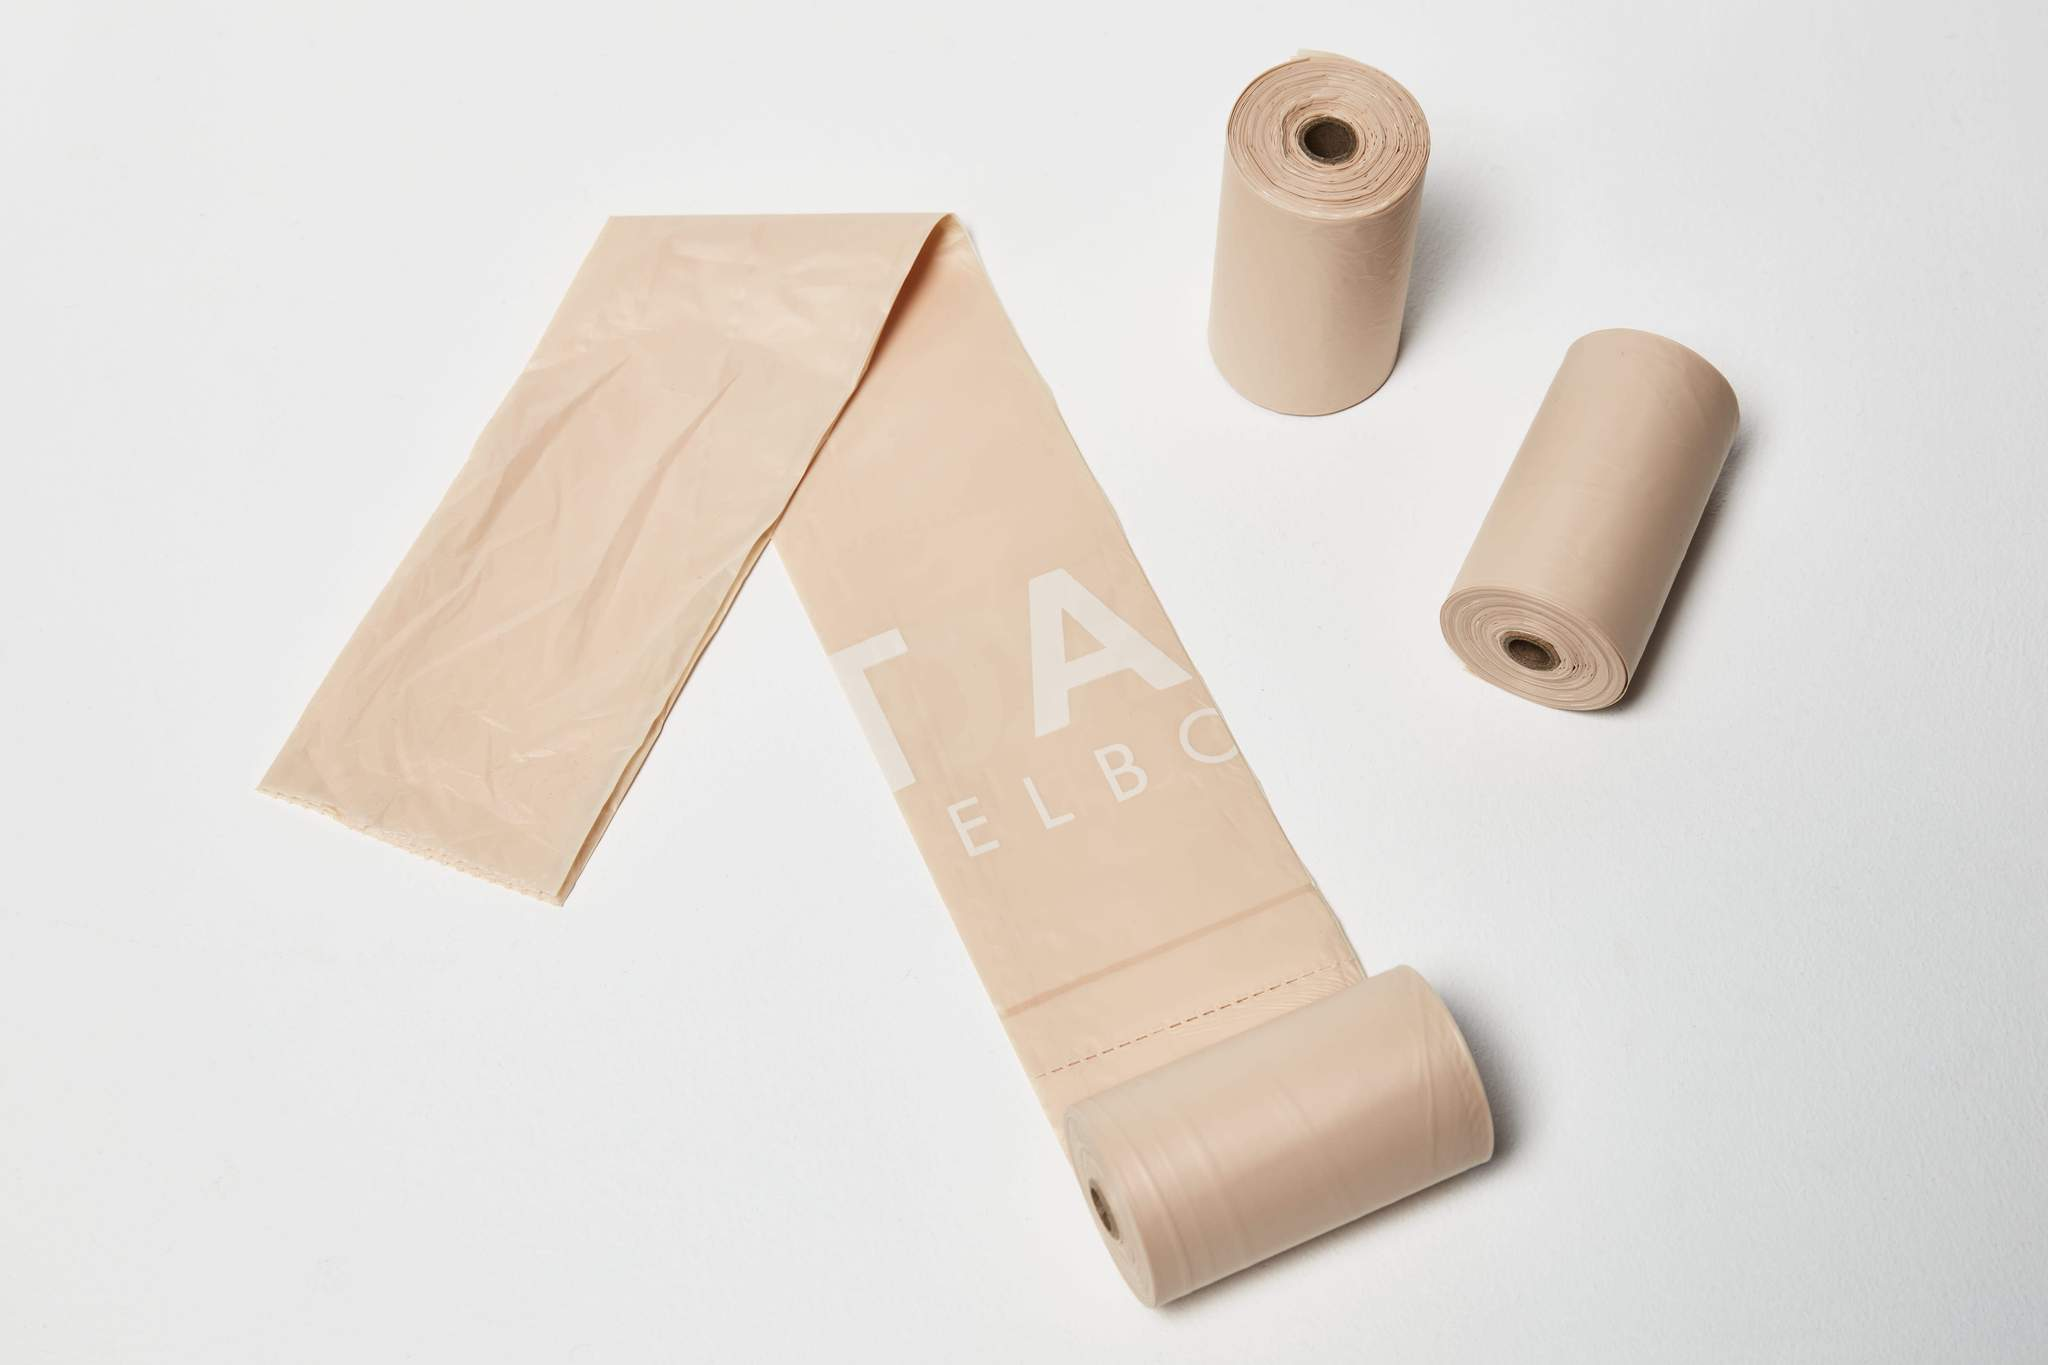 Biodegradable Poop Bags sT ARGO